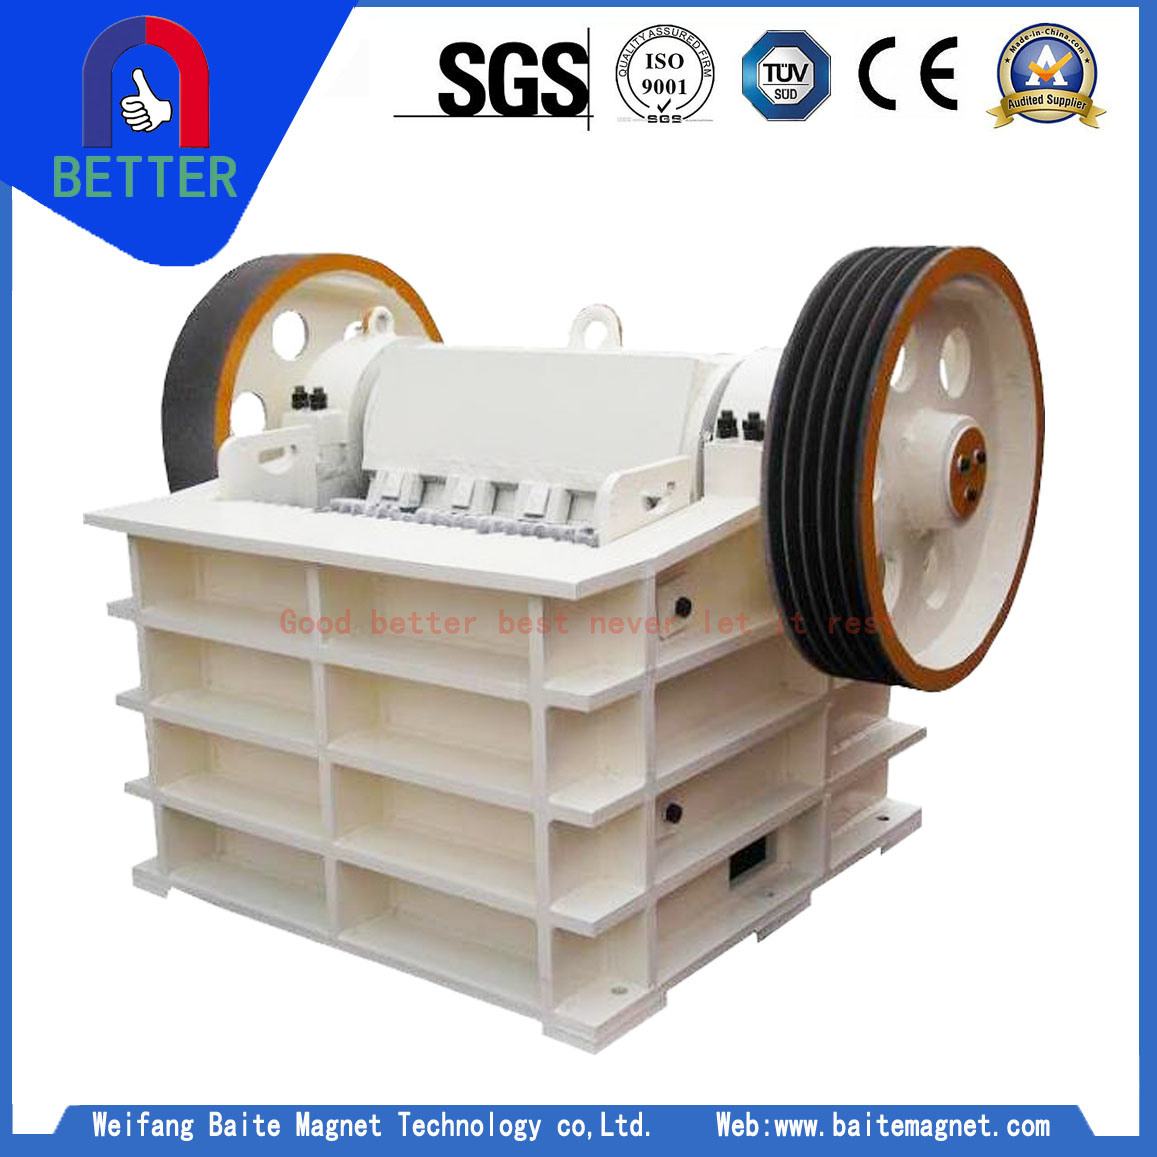 Fex Quotes China Isoce Certification Fex150X250 Series Miningjaw Crusher